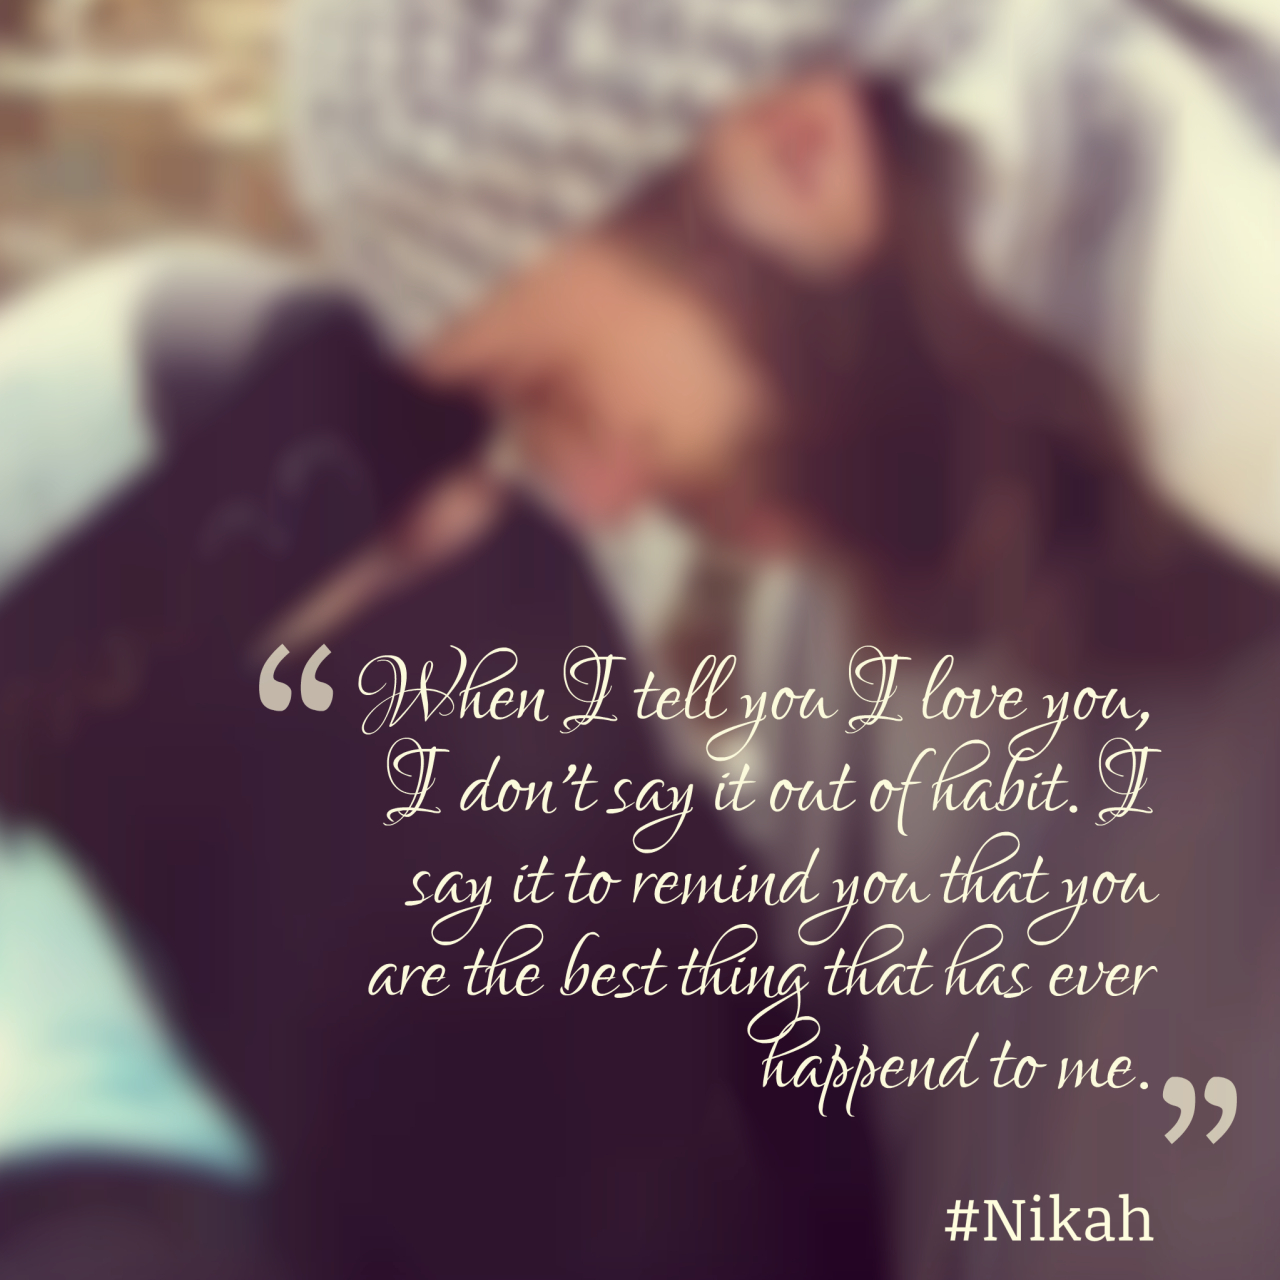 Islamic Quotes About Love Beautiful Islamic Love Quotes Love Life Quotes